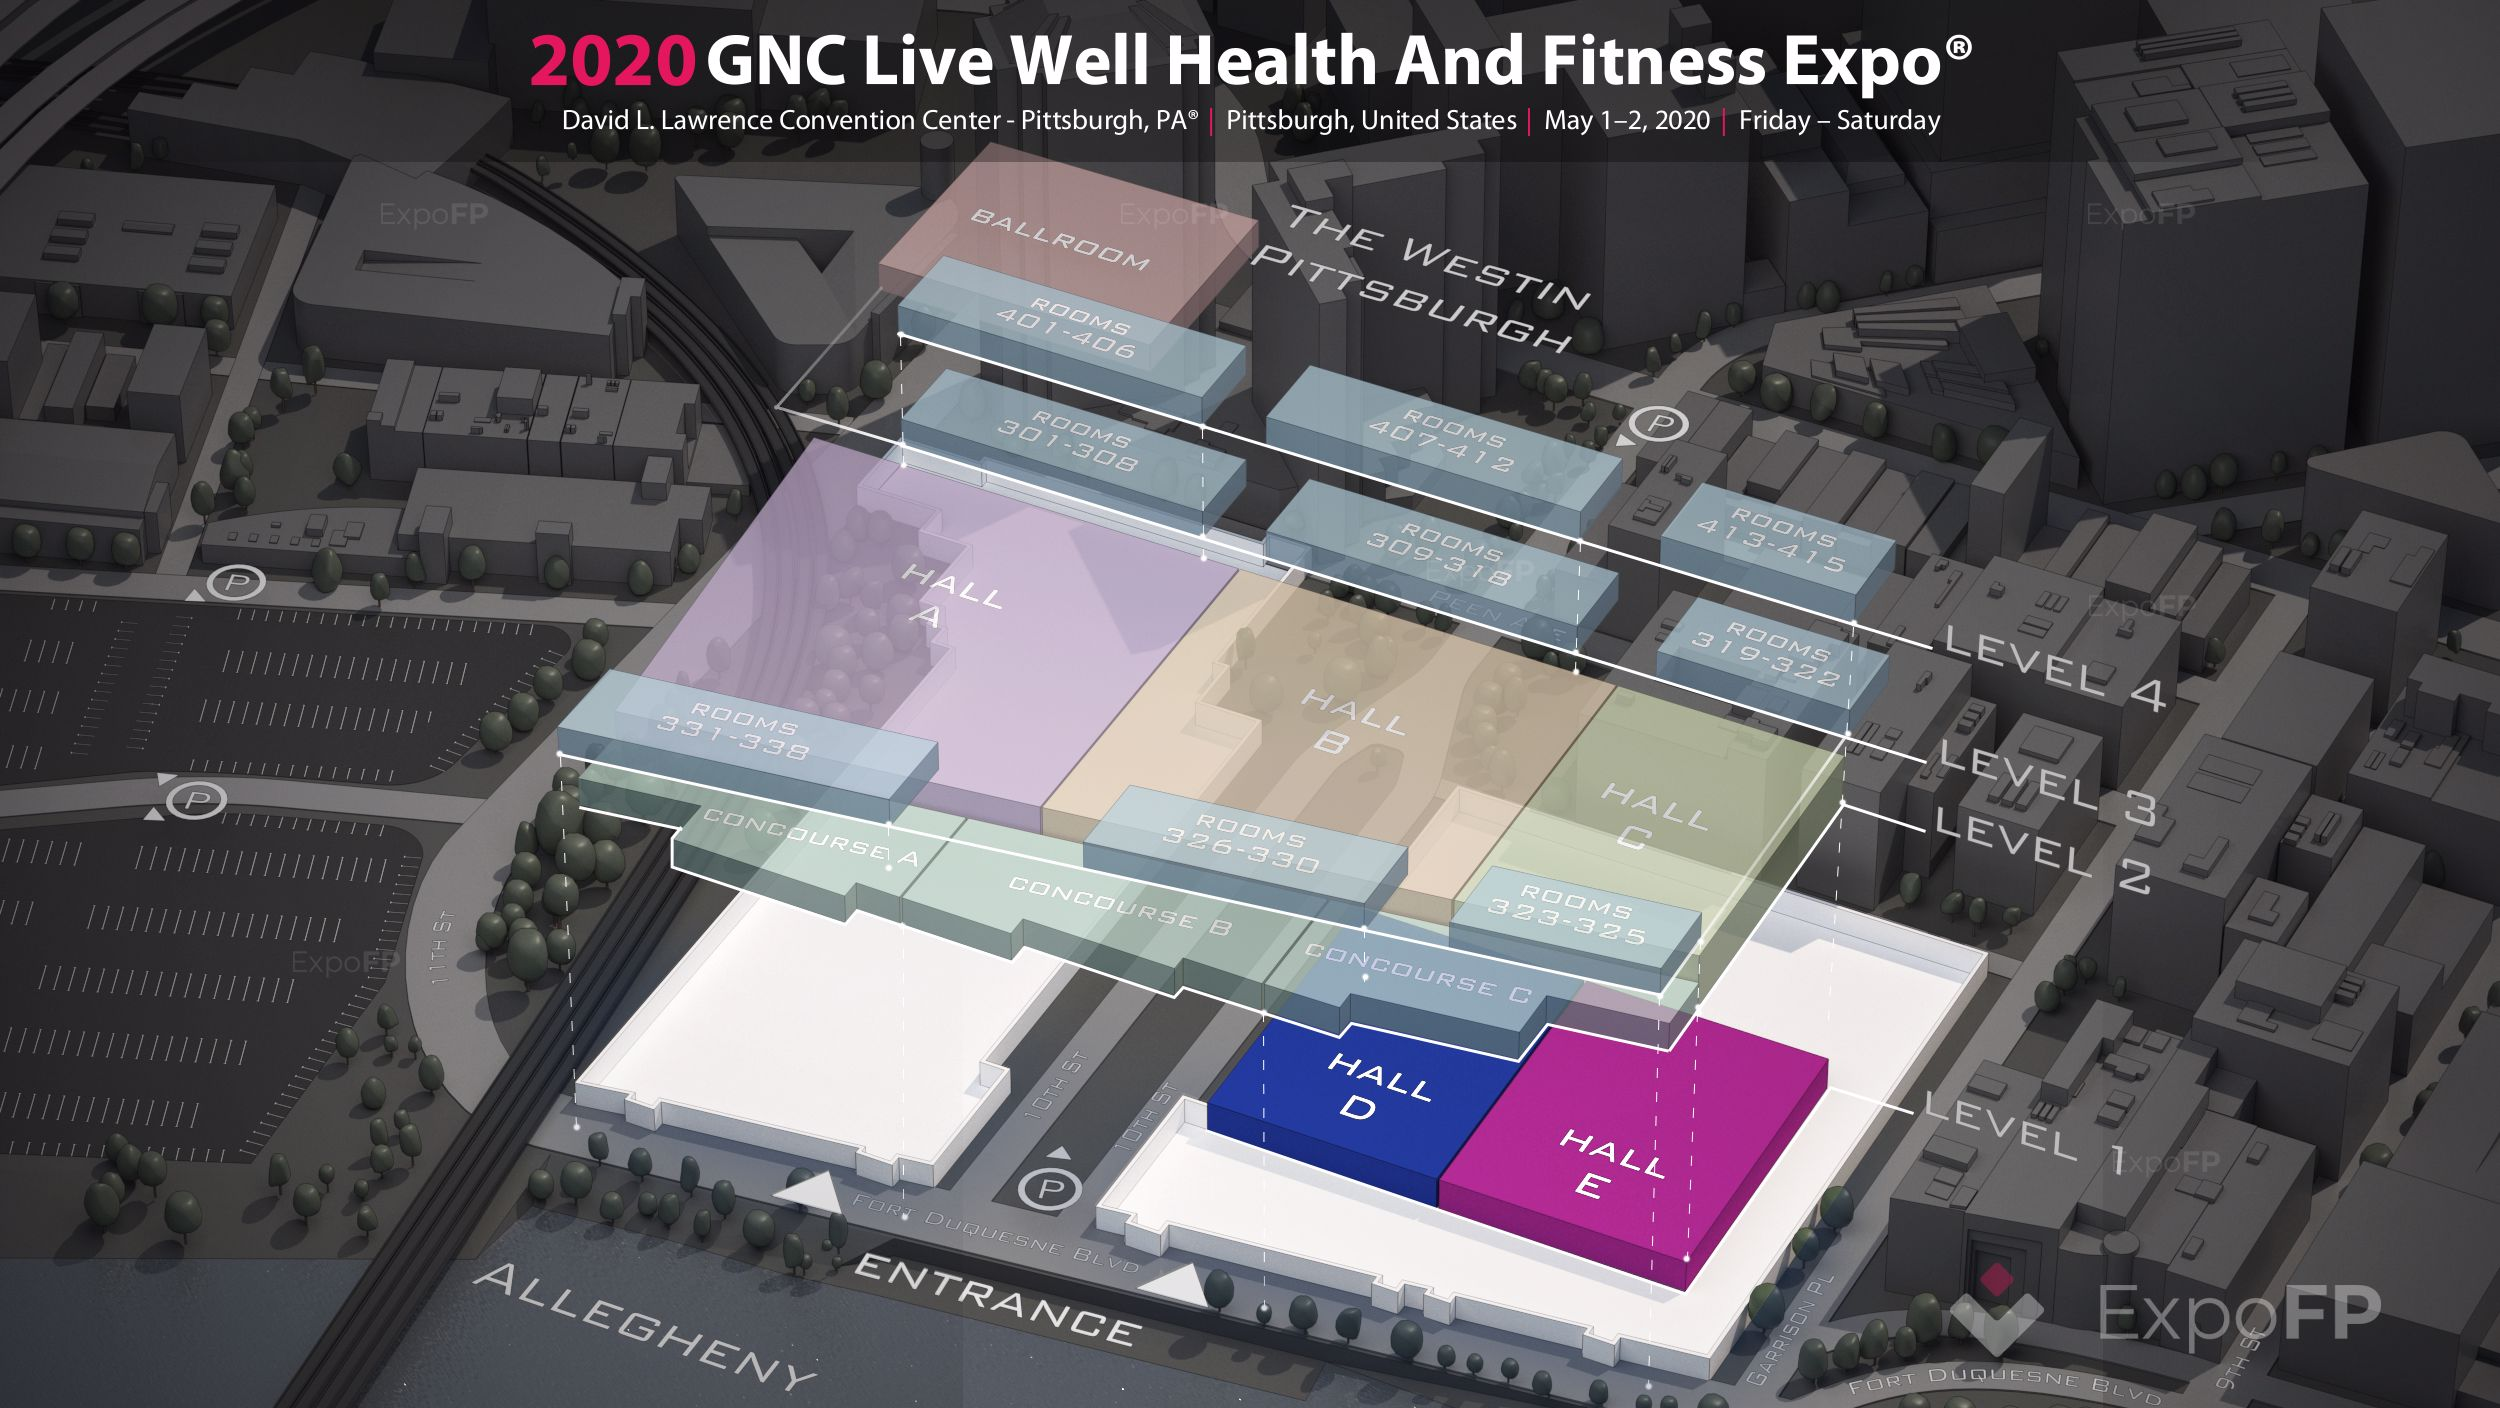 Gnc Going Out Of Business 2020.Gnc Live Well Health And Fitness Expo 2020 In David L